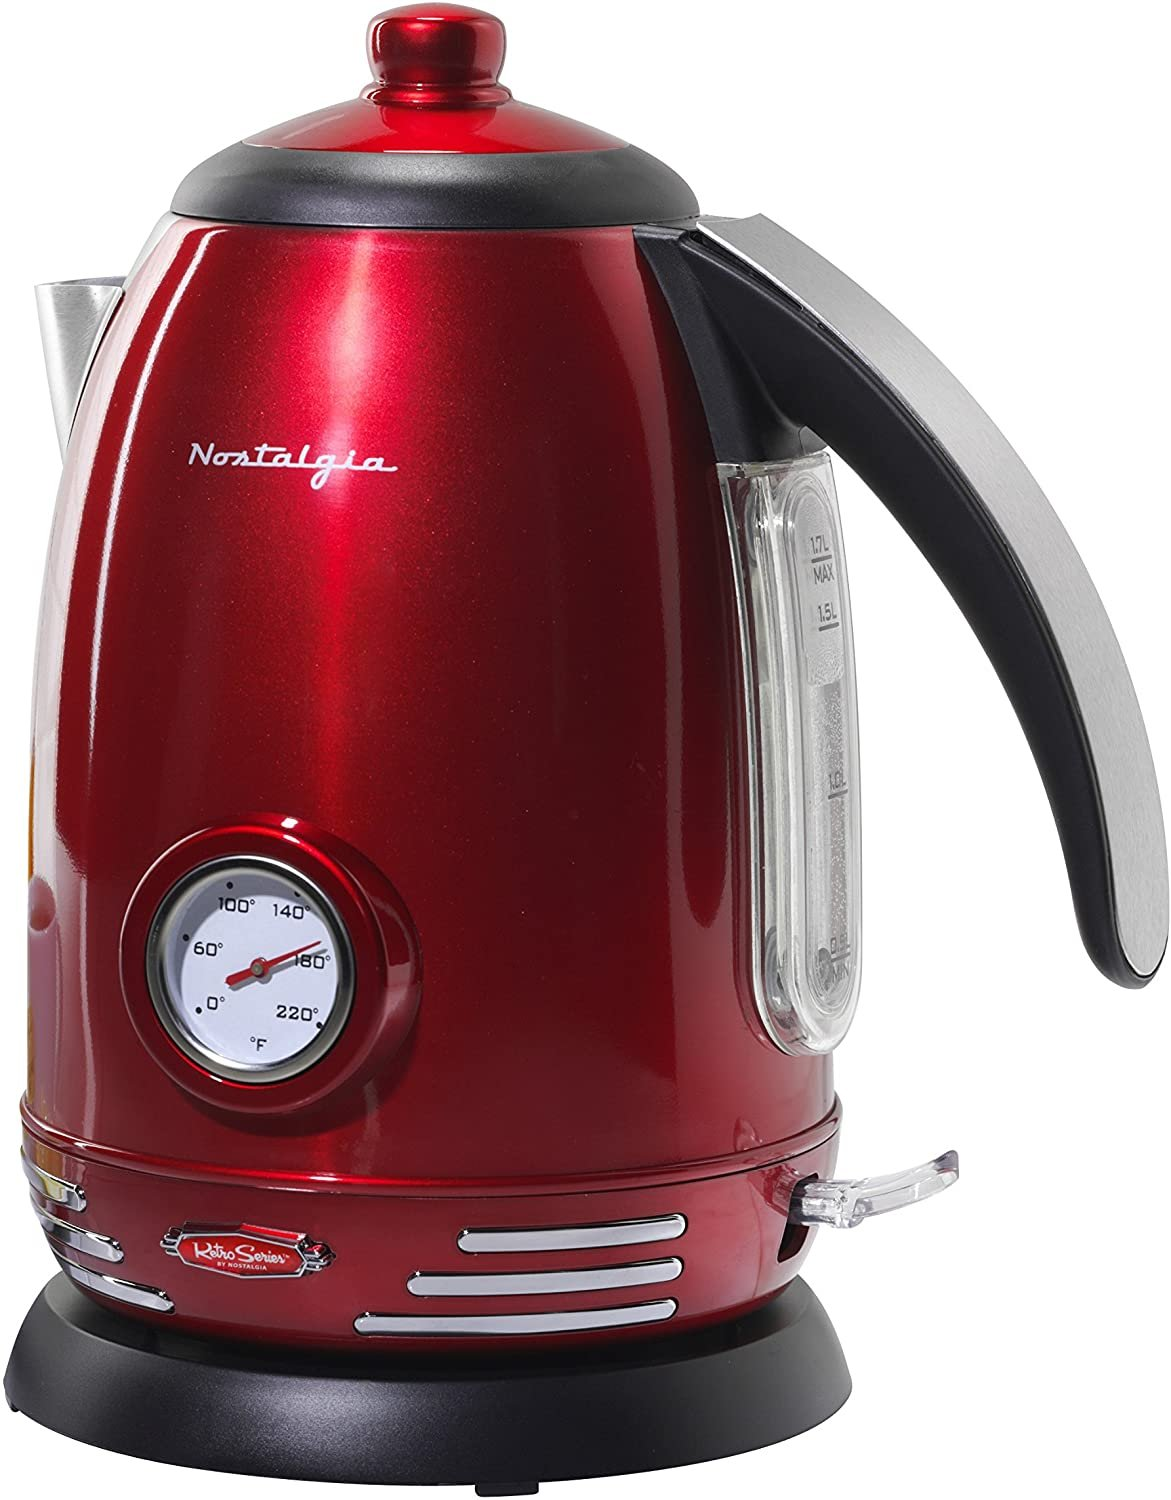 Ultra fast  Red  Wireless 7-Cup Electric Kettle  -1.7 liter auto shut off